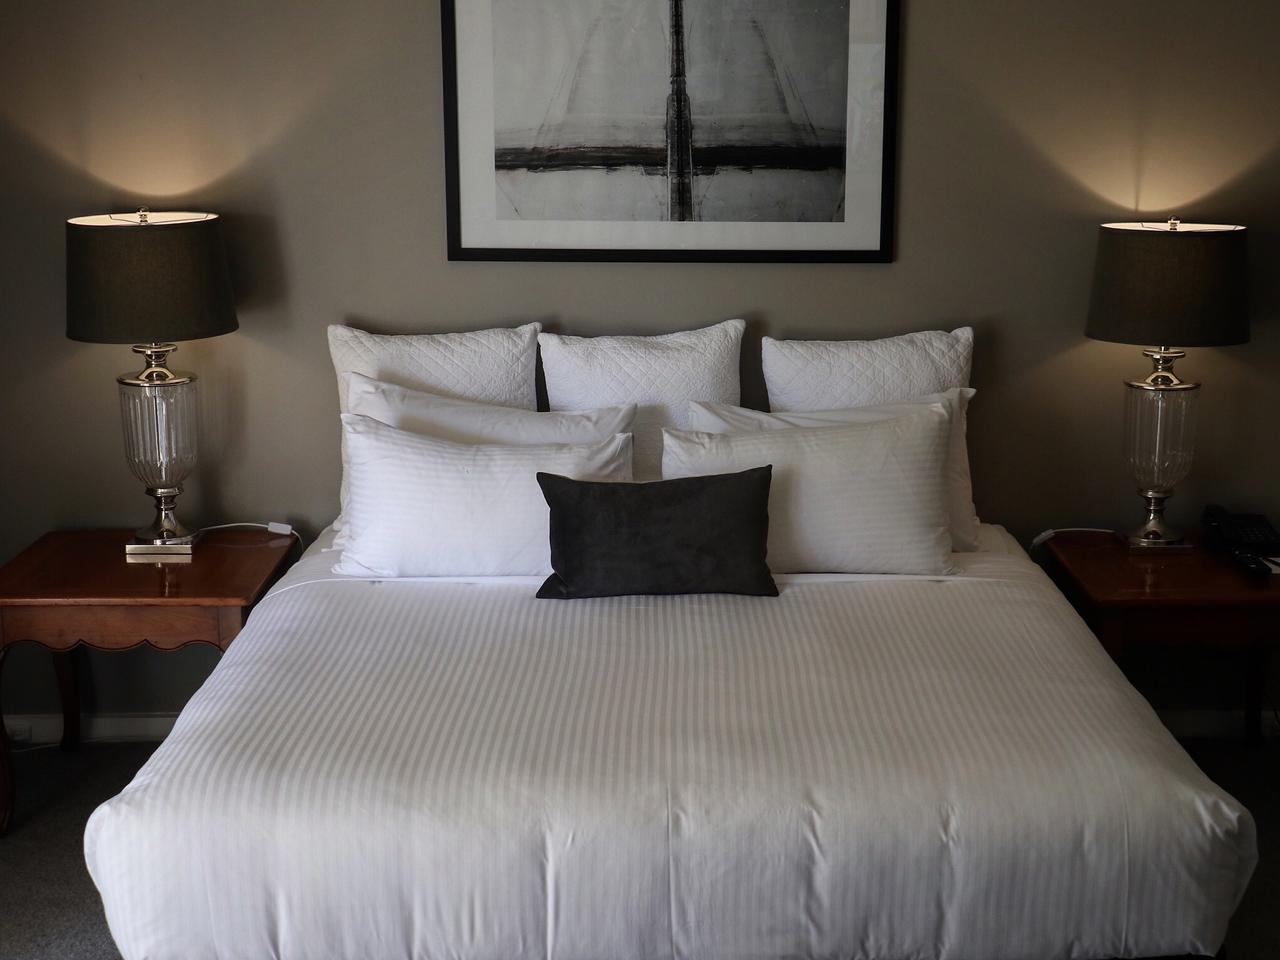 Lindenderry hotel bed i bought